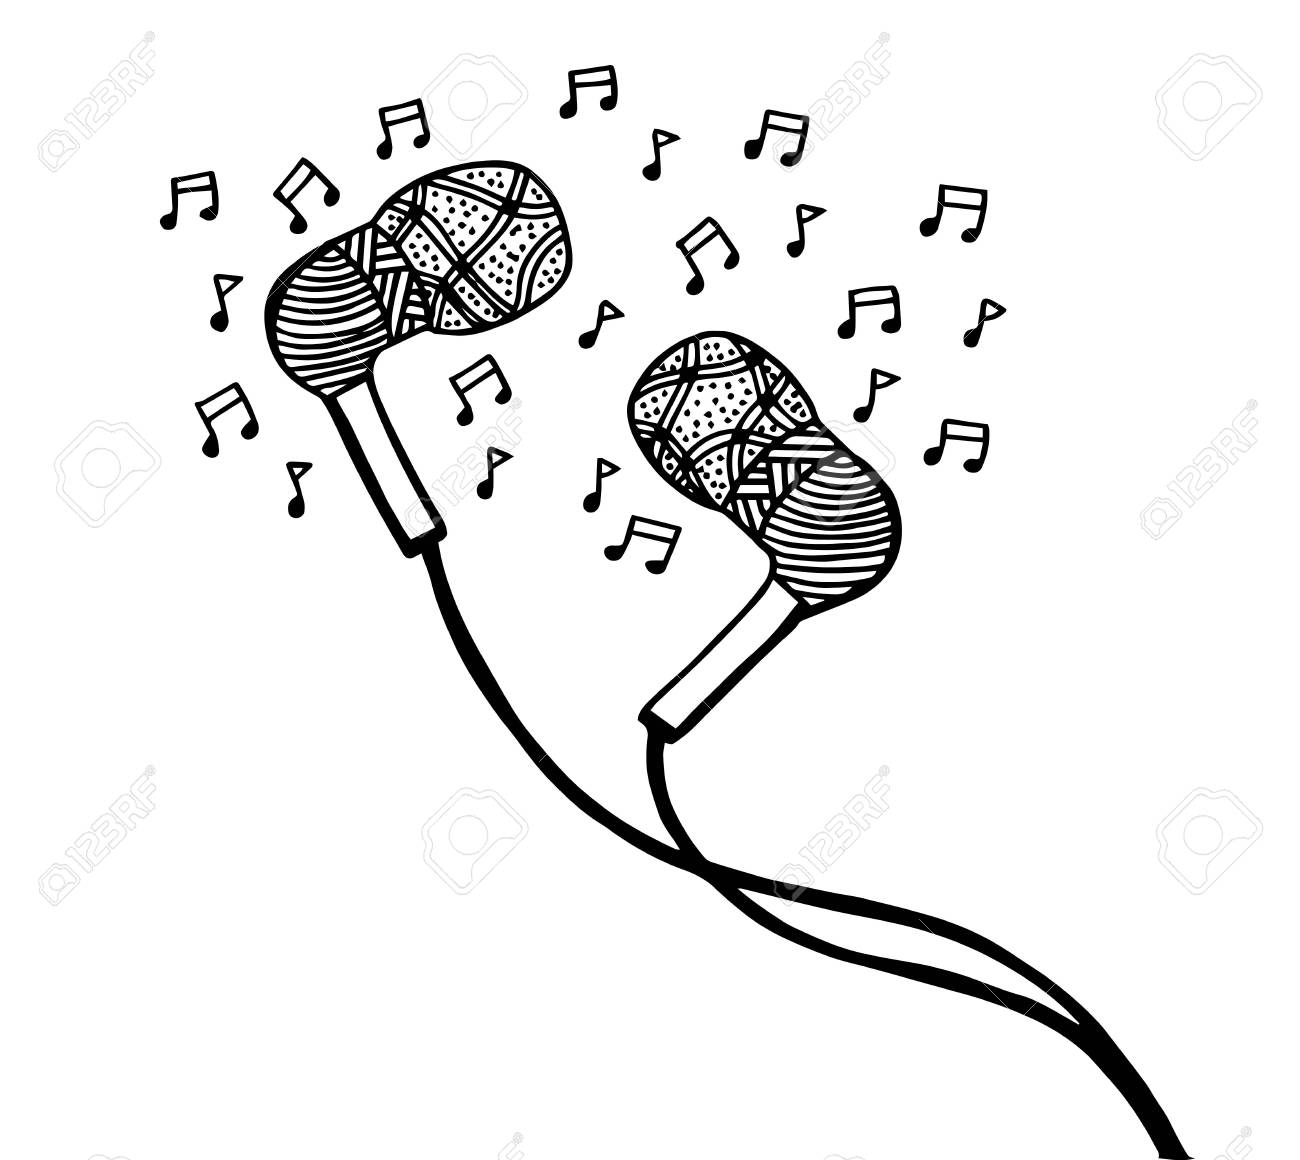 Doodle Style Headphones Vector Illustration With Musical Notes